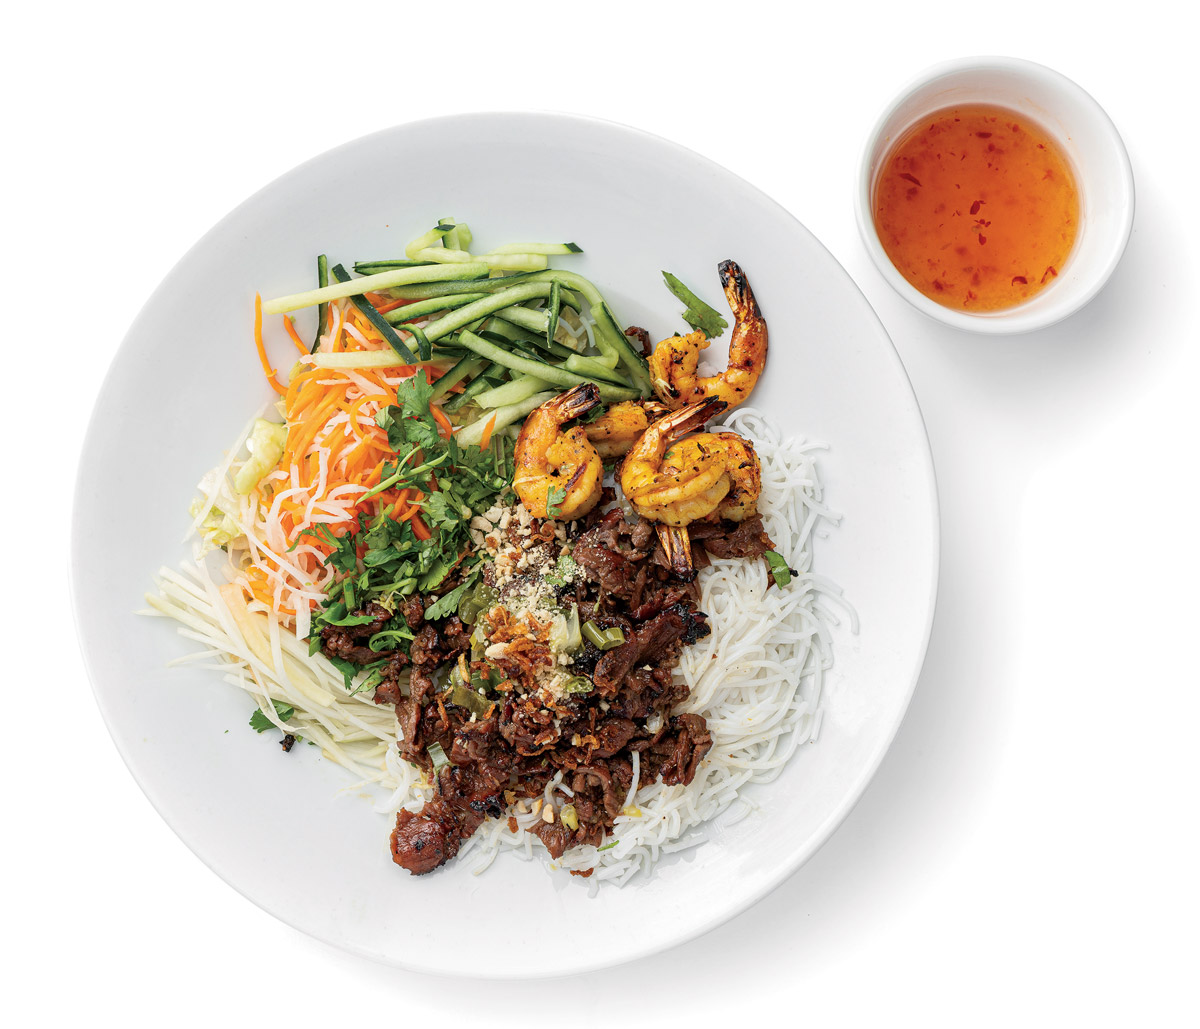 Lamb and shrimp vermicelli